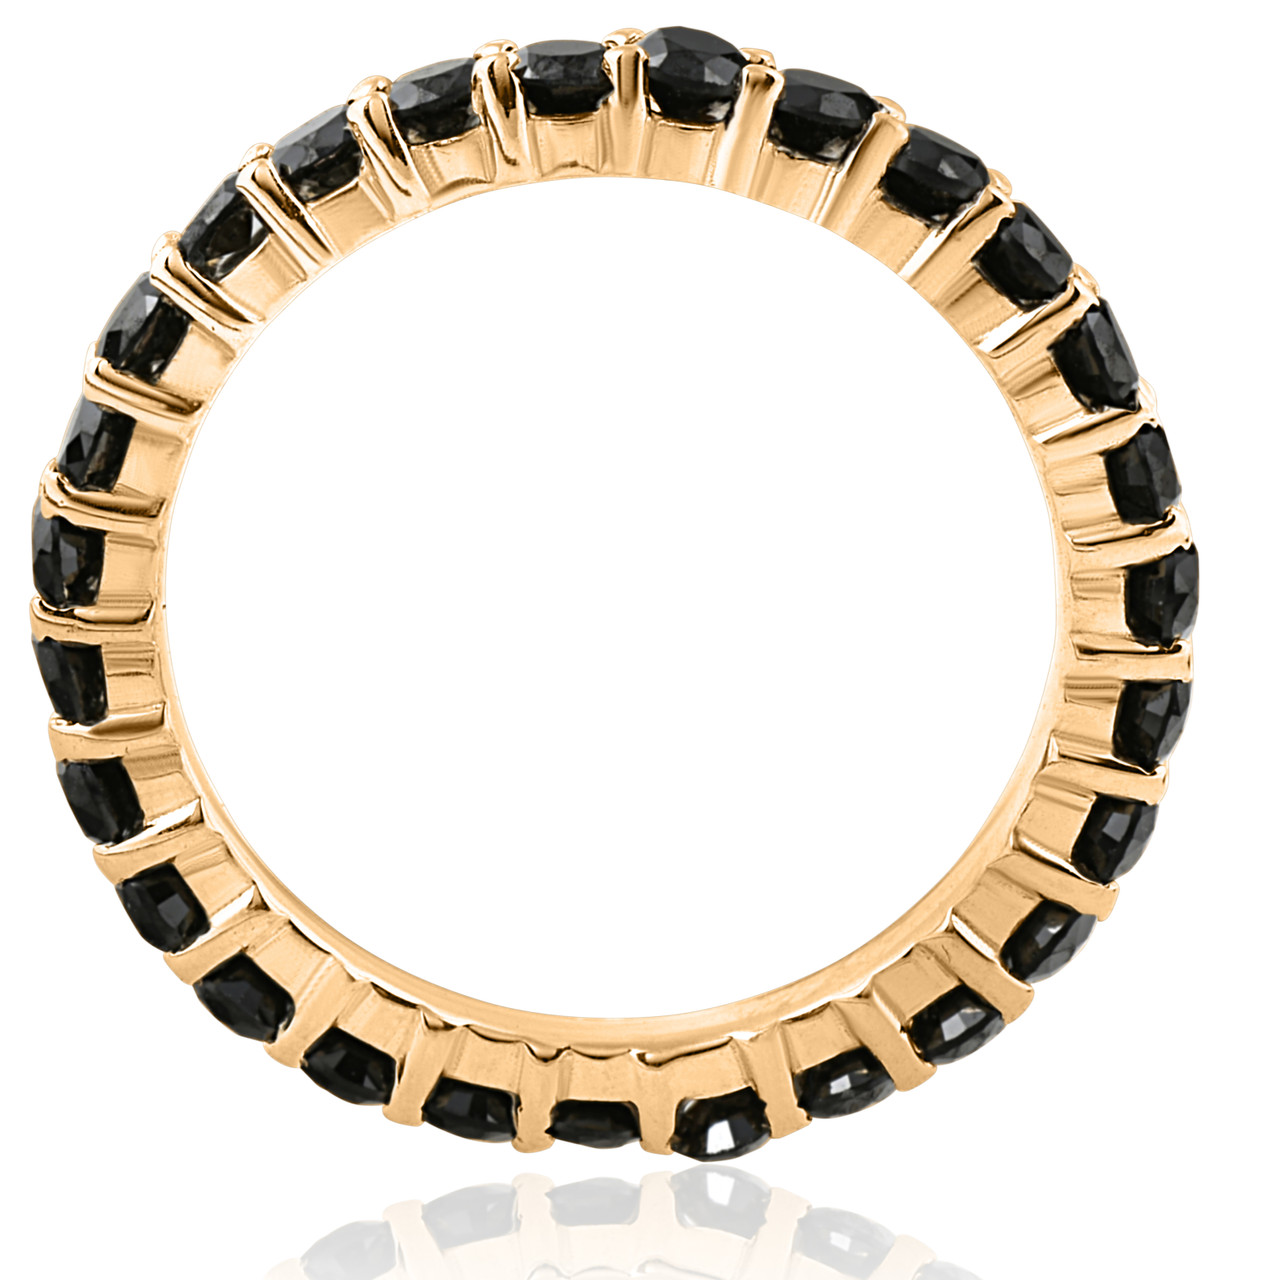 band il eternity diamond bands available pave micro as black listing